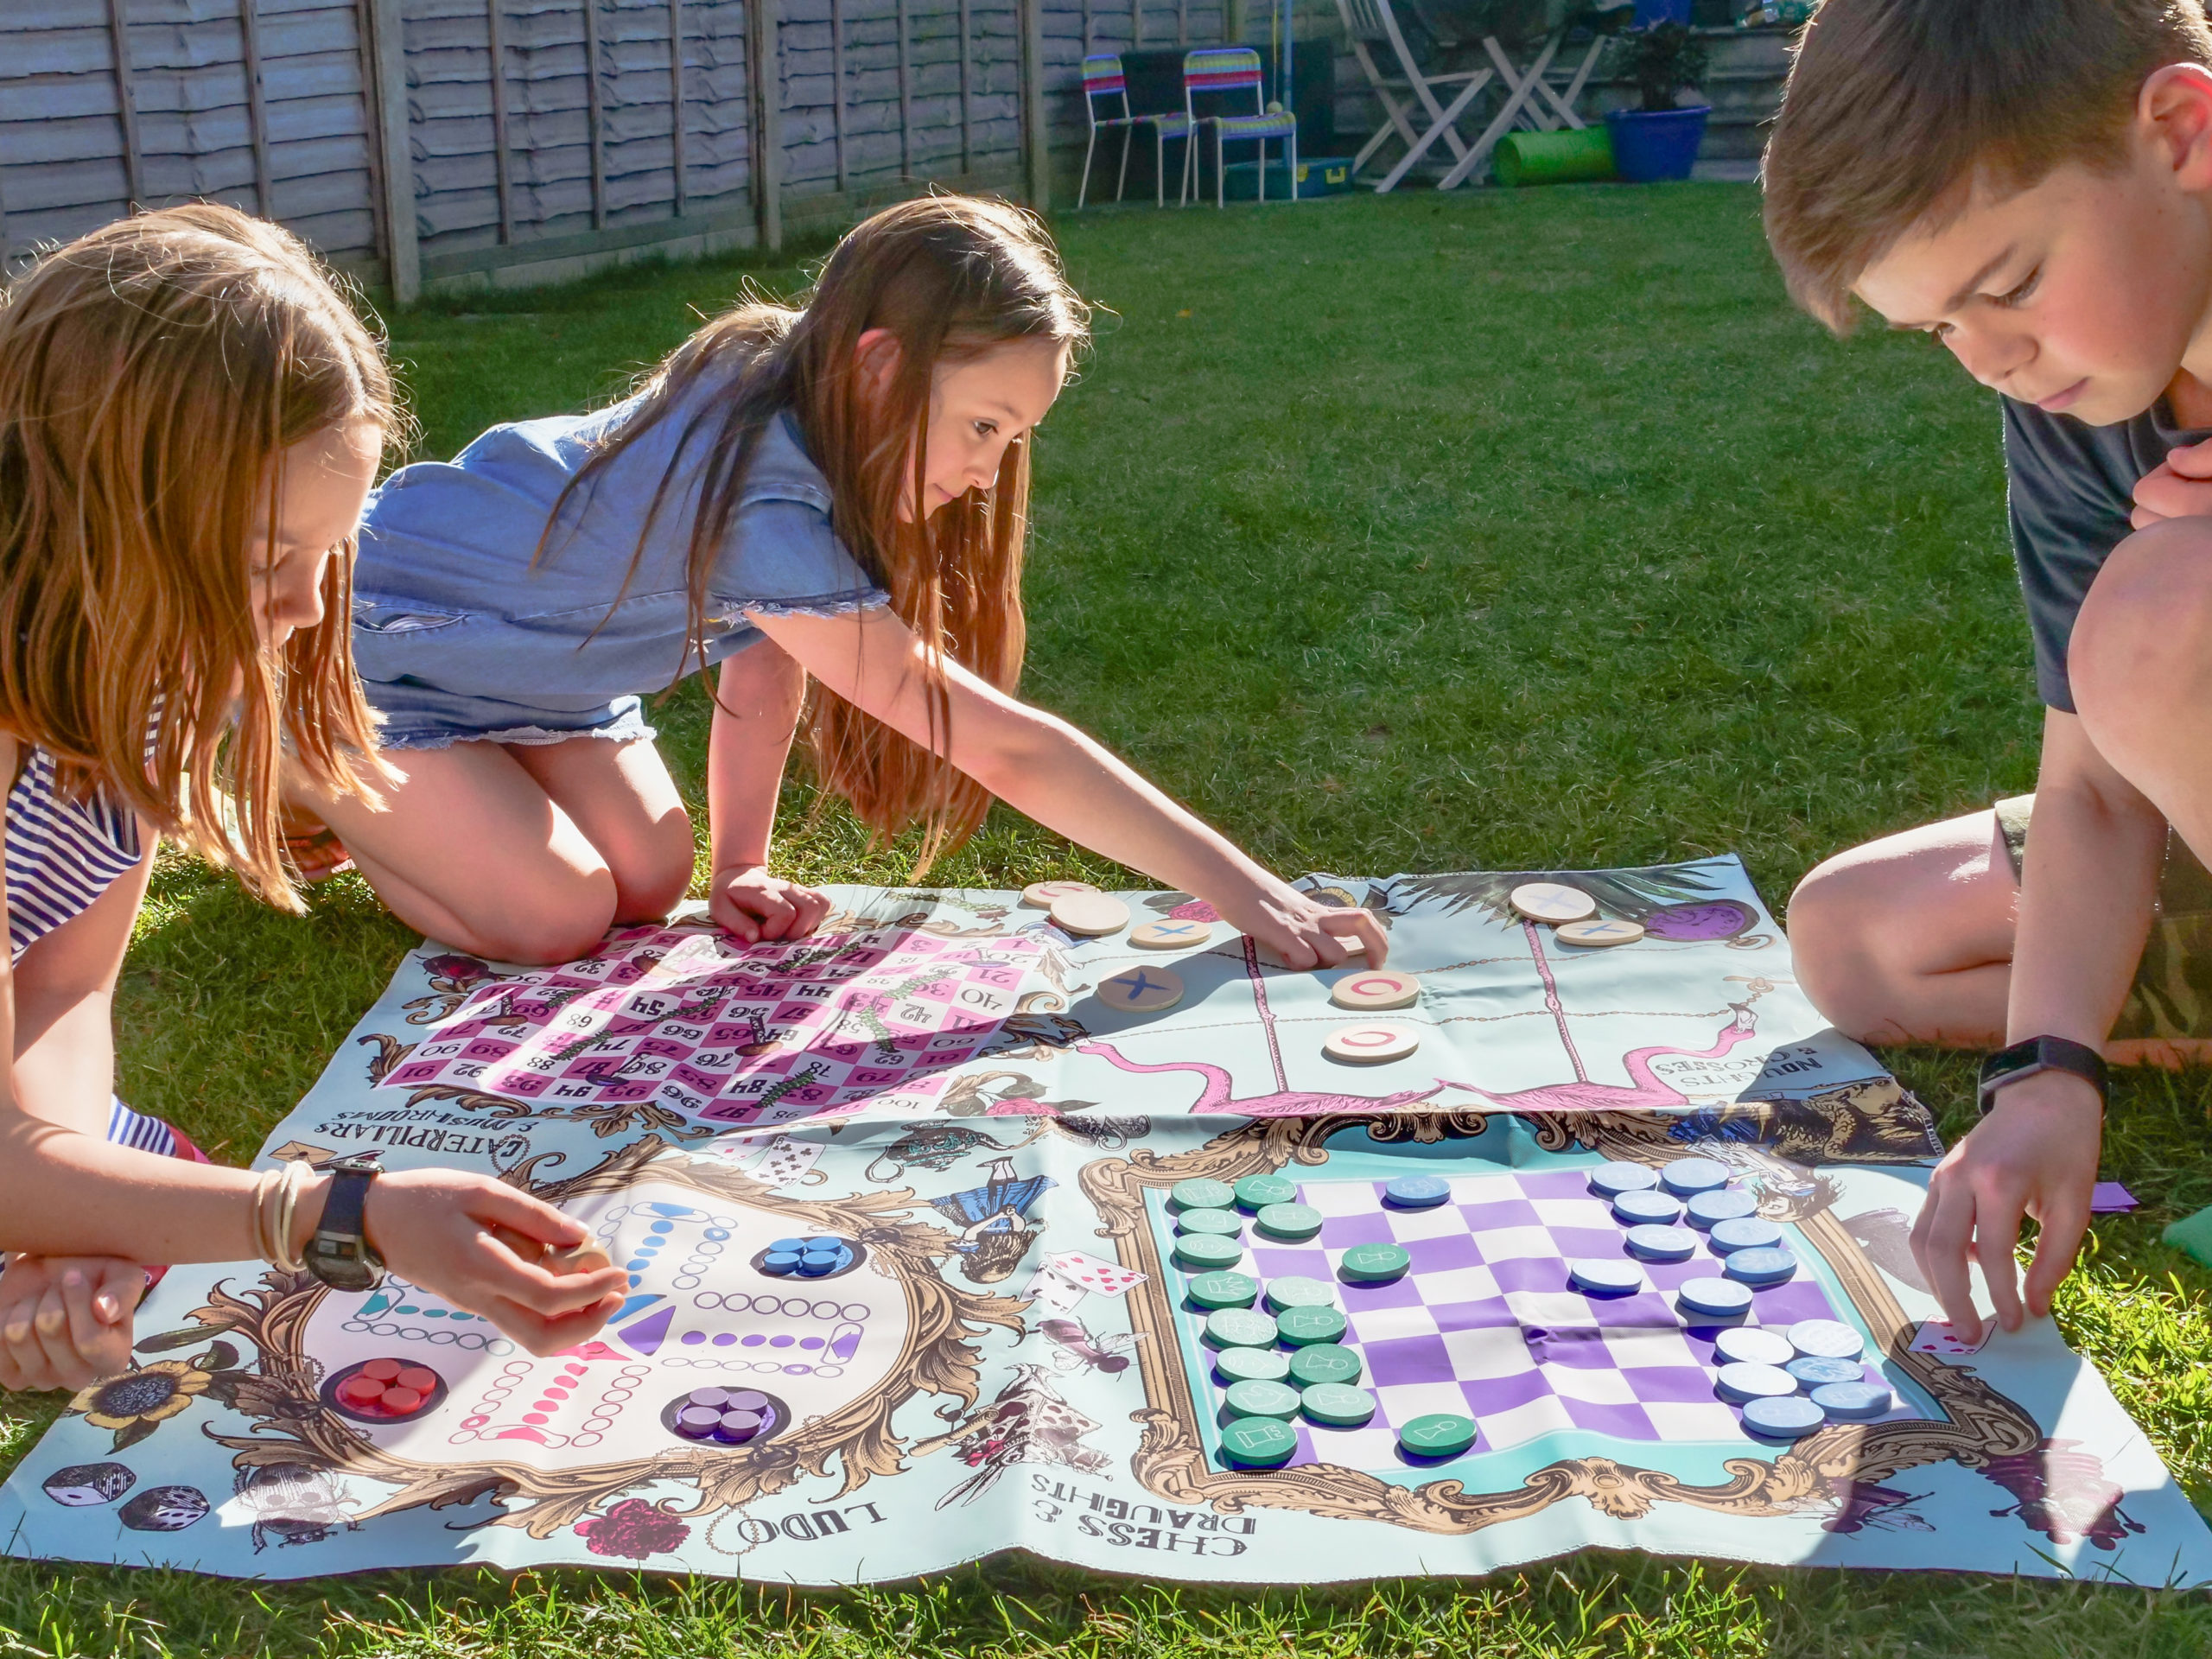 Garden games at the ready!